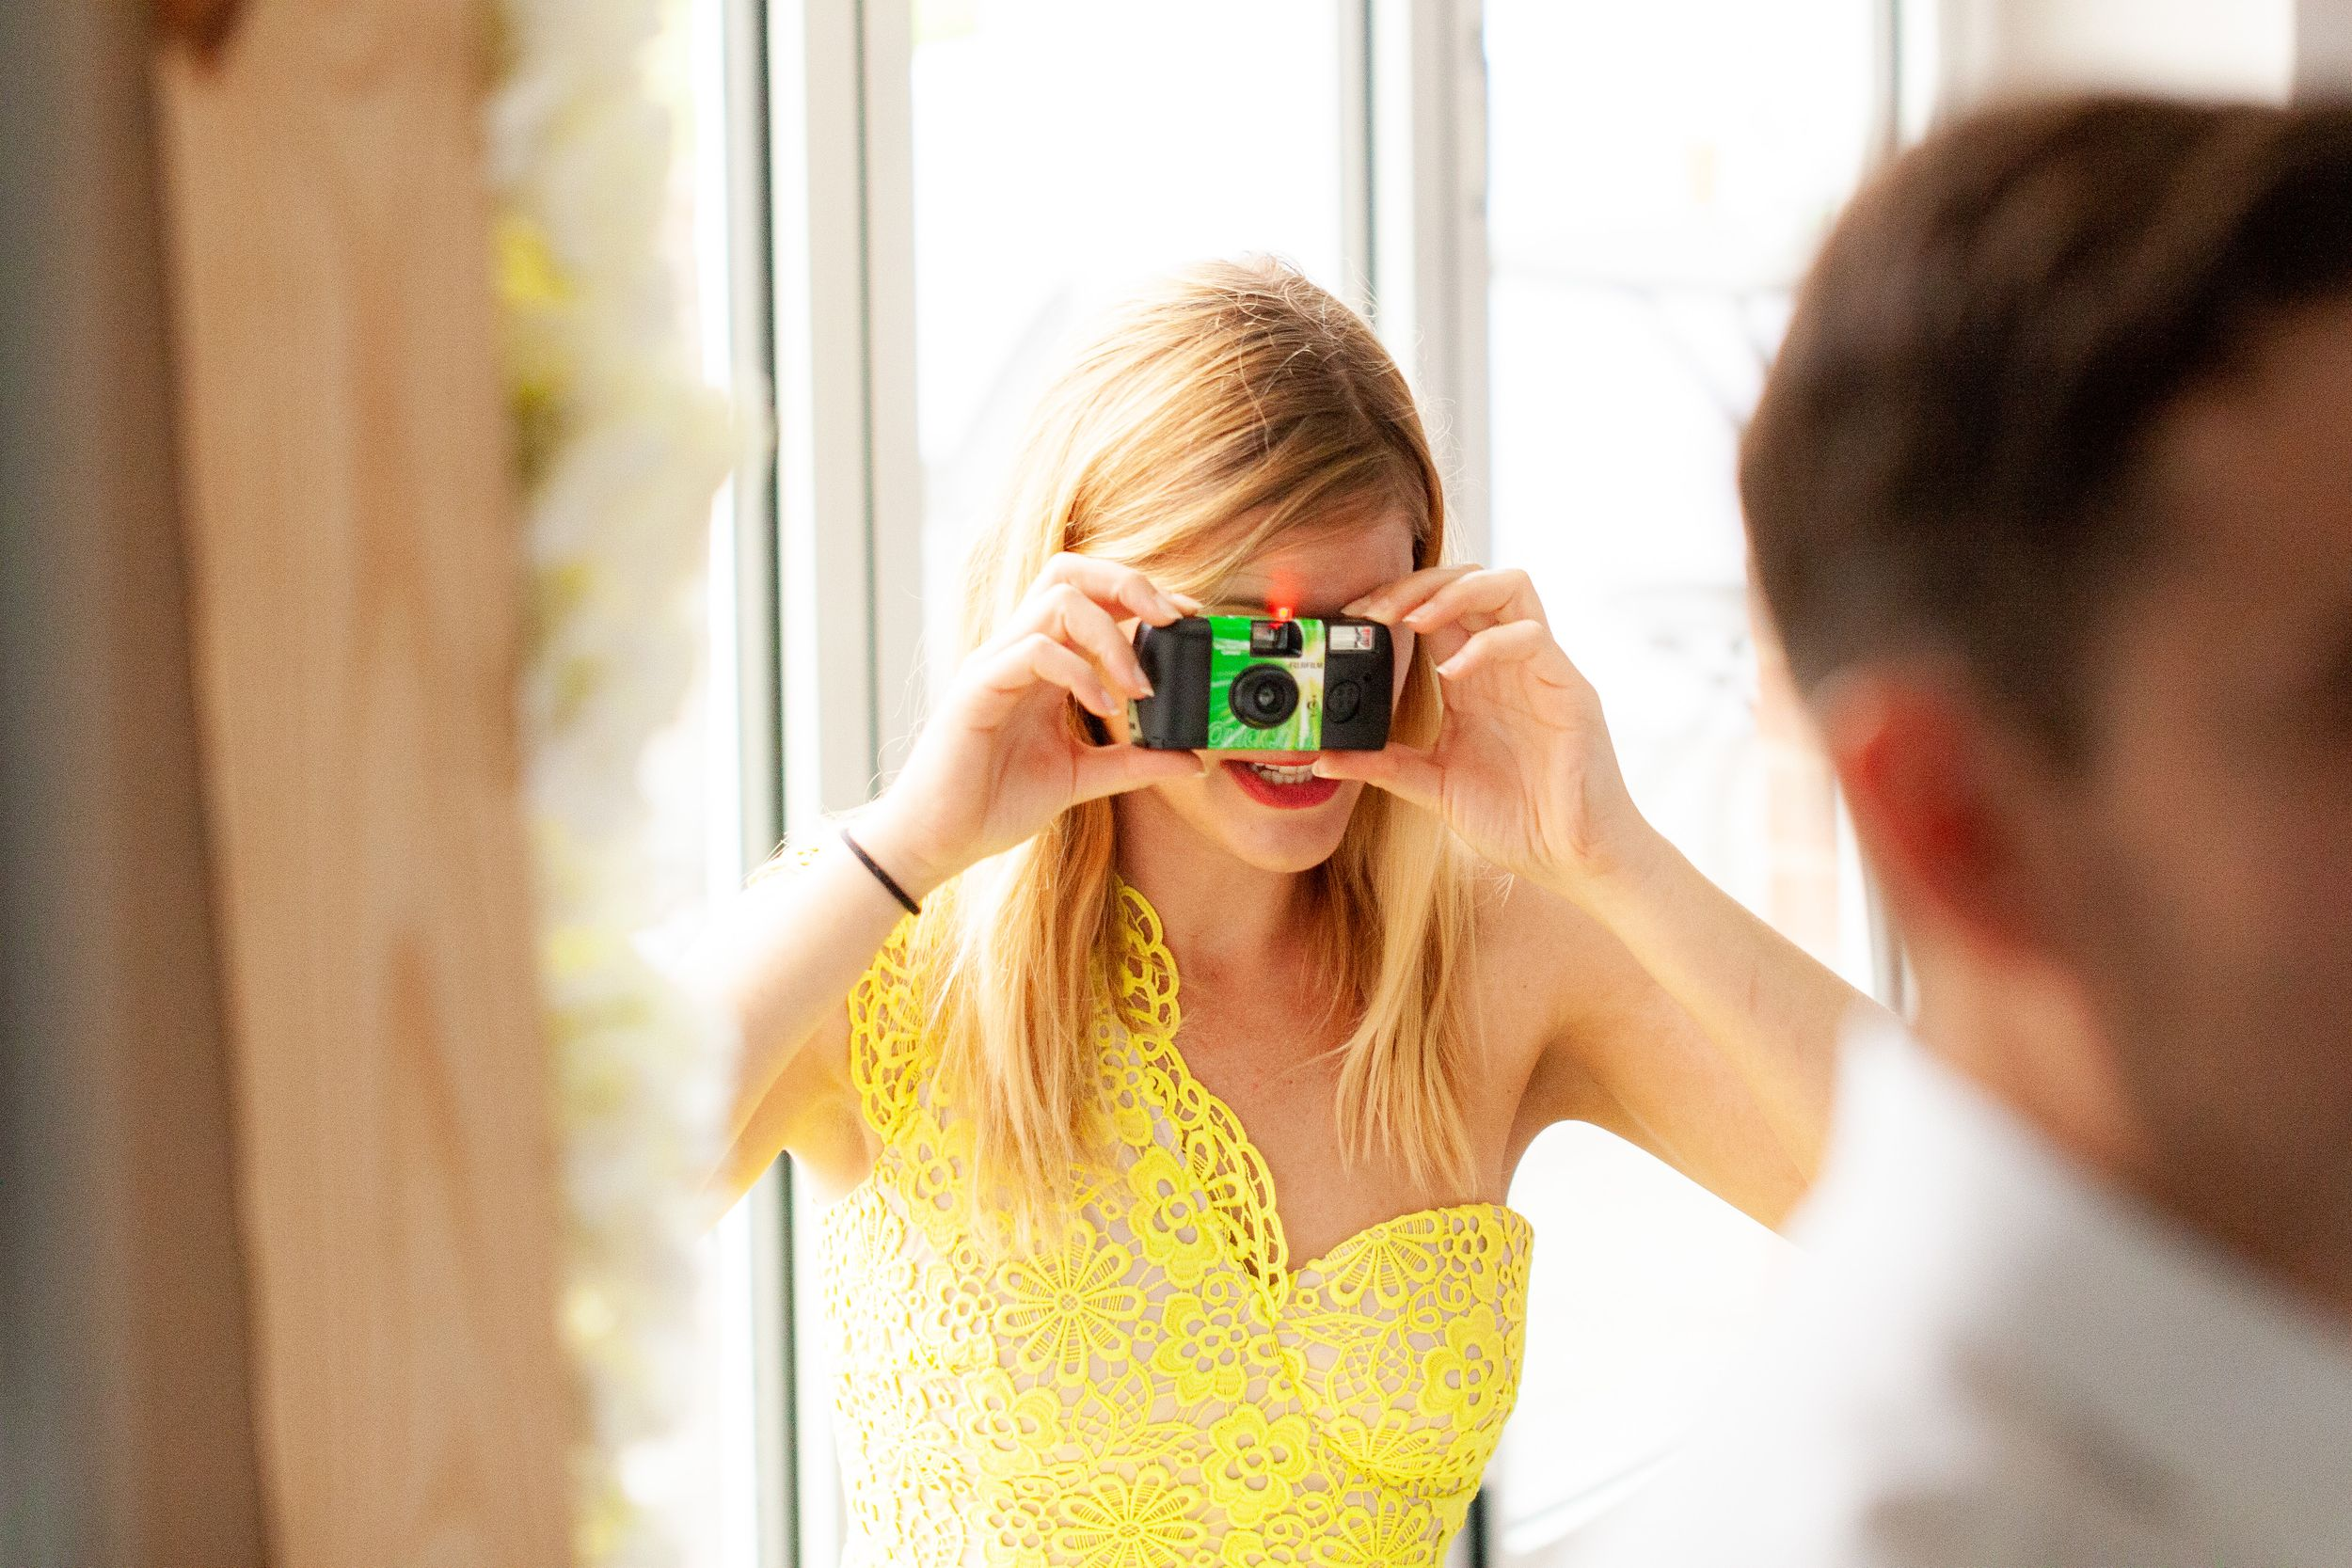 Wedding guest takes o photograph with a disposable camera - Wedding Photography